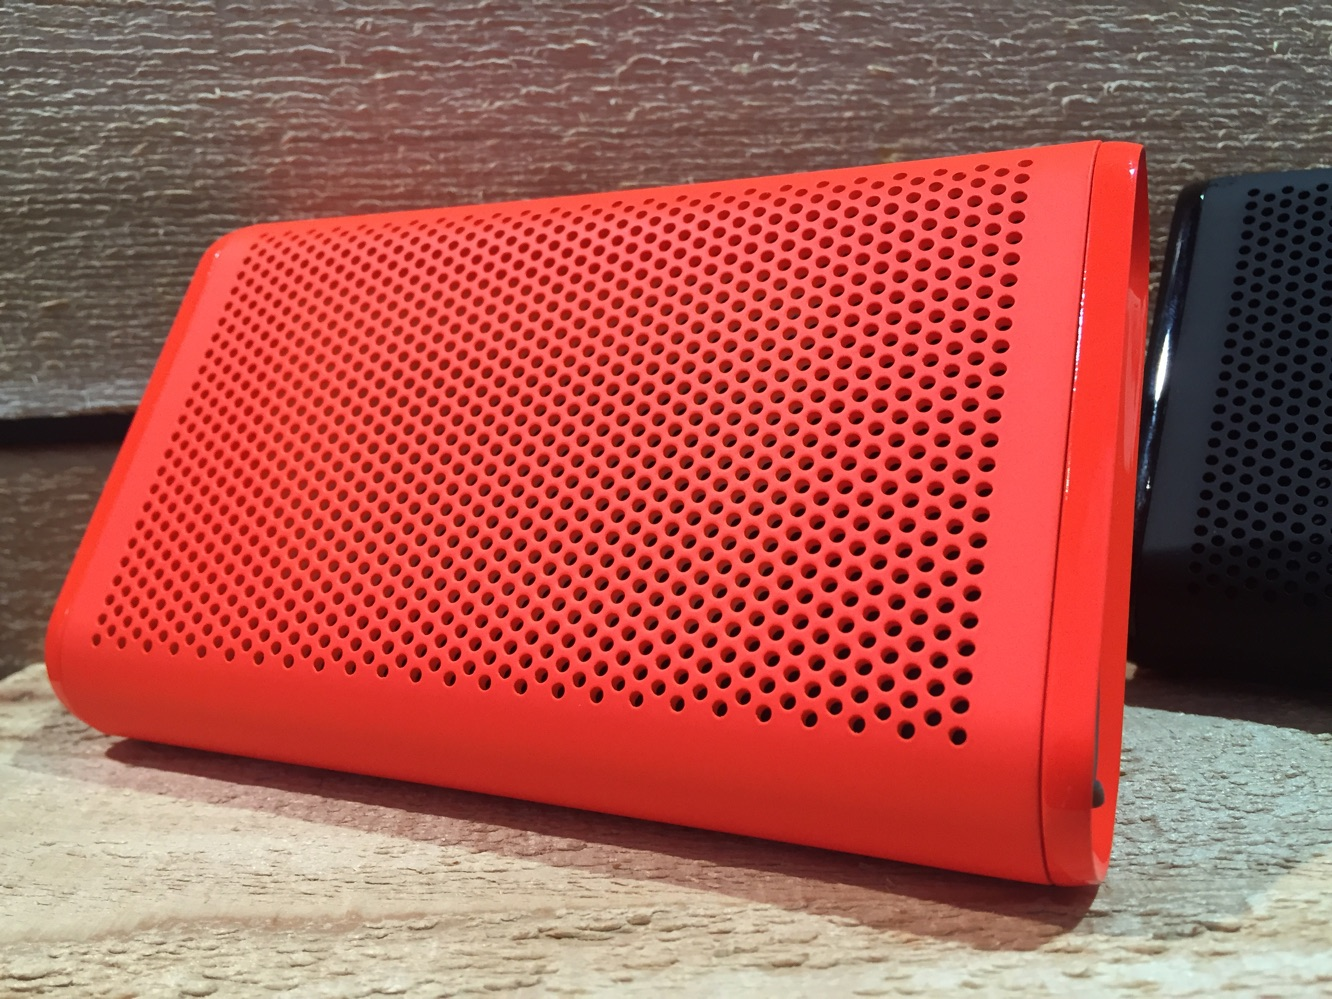 Braven intros new speakers at CES, including the BRV-XXL and BRV-BLADE LE 5